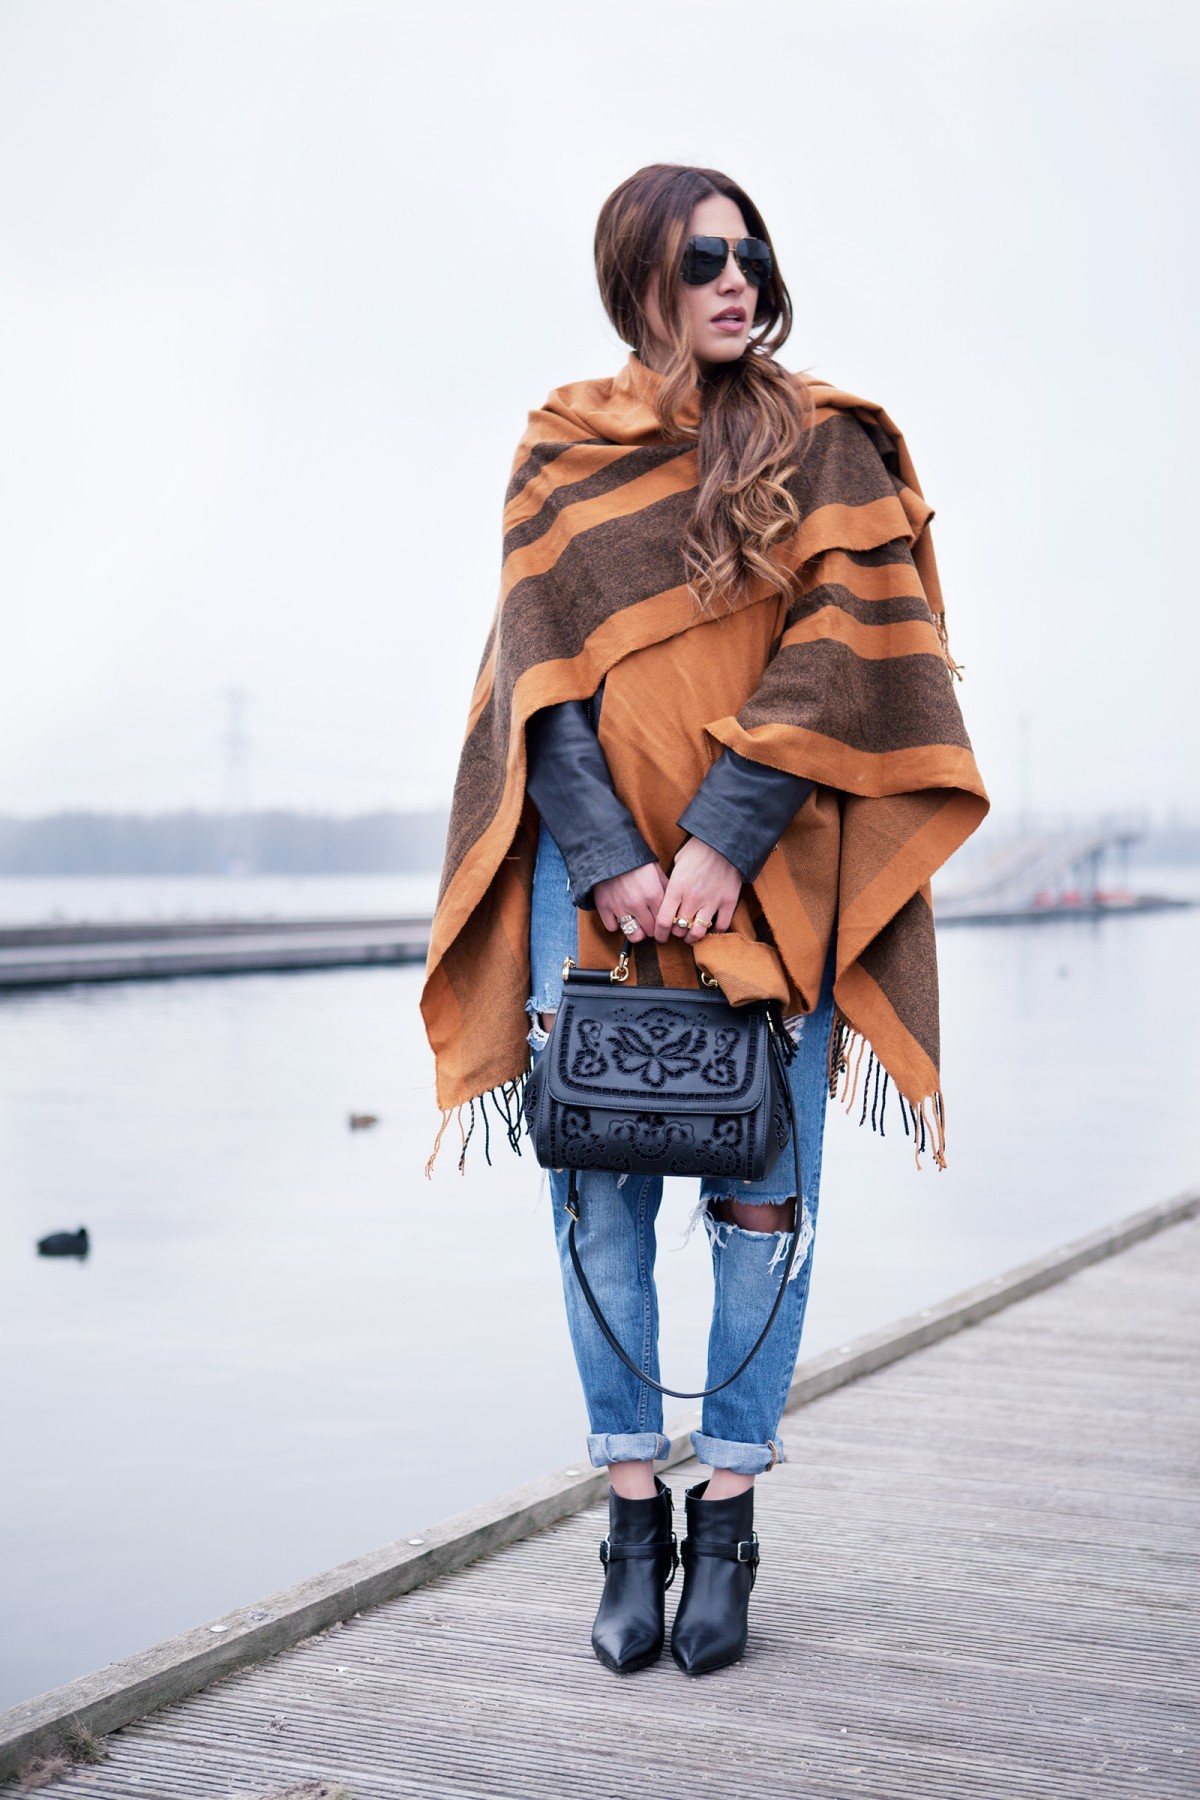 Negin Mirsalehi is wearing a orange and black striped blanket cape from Asos